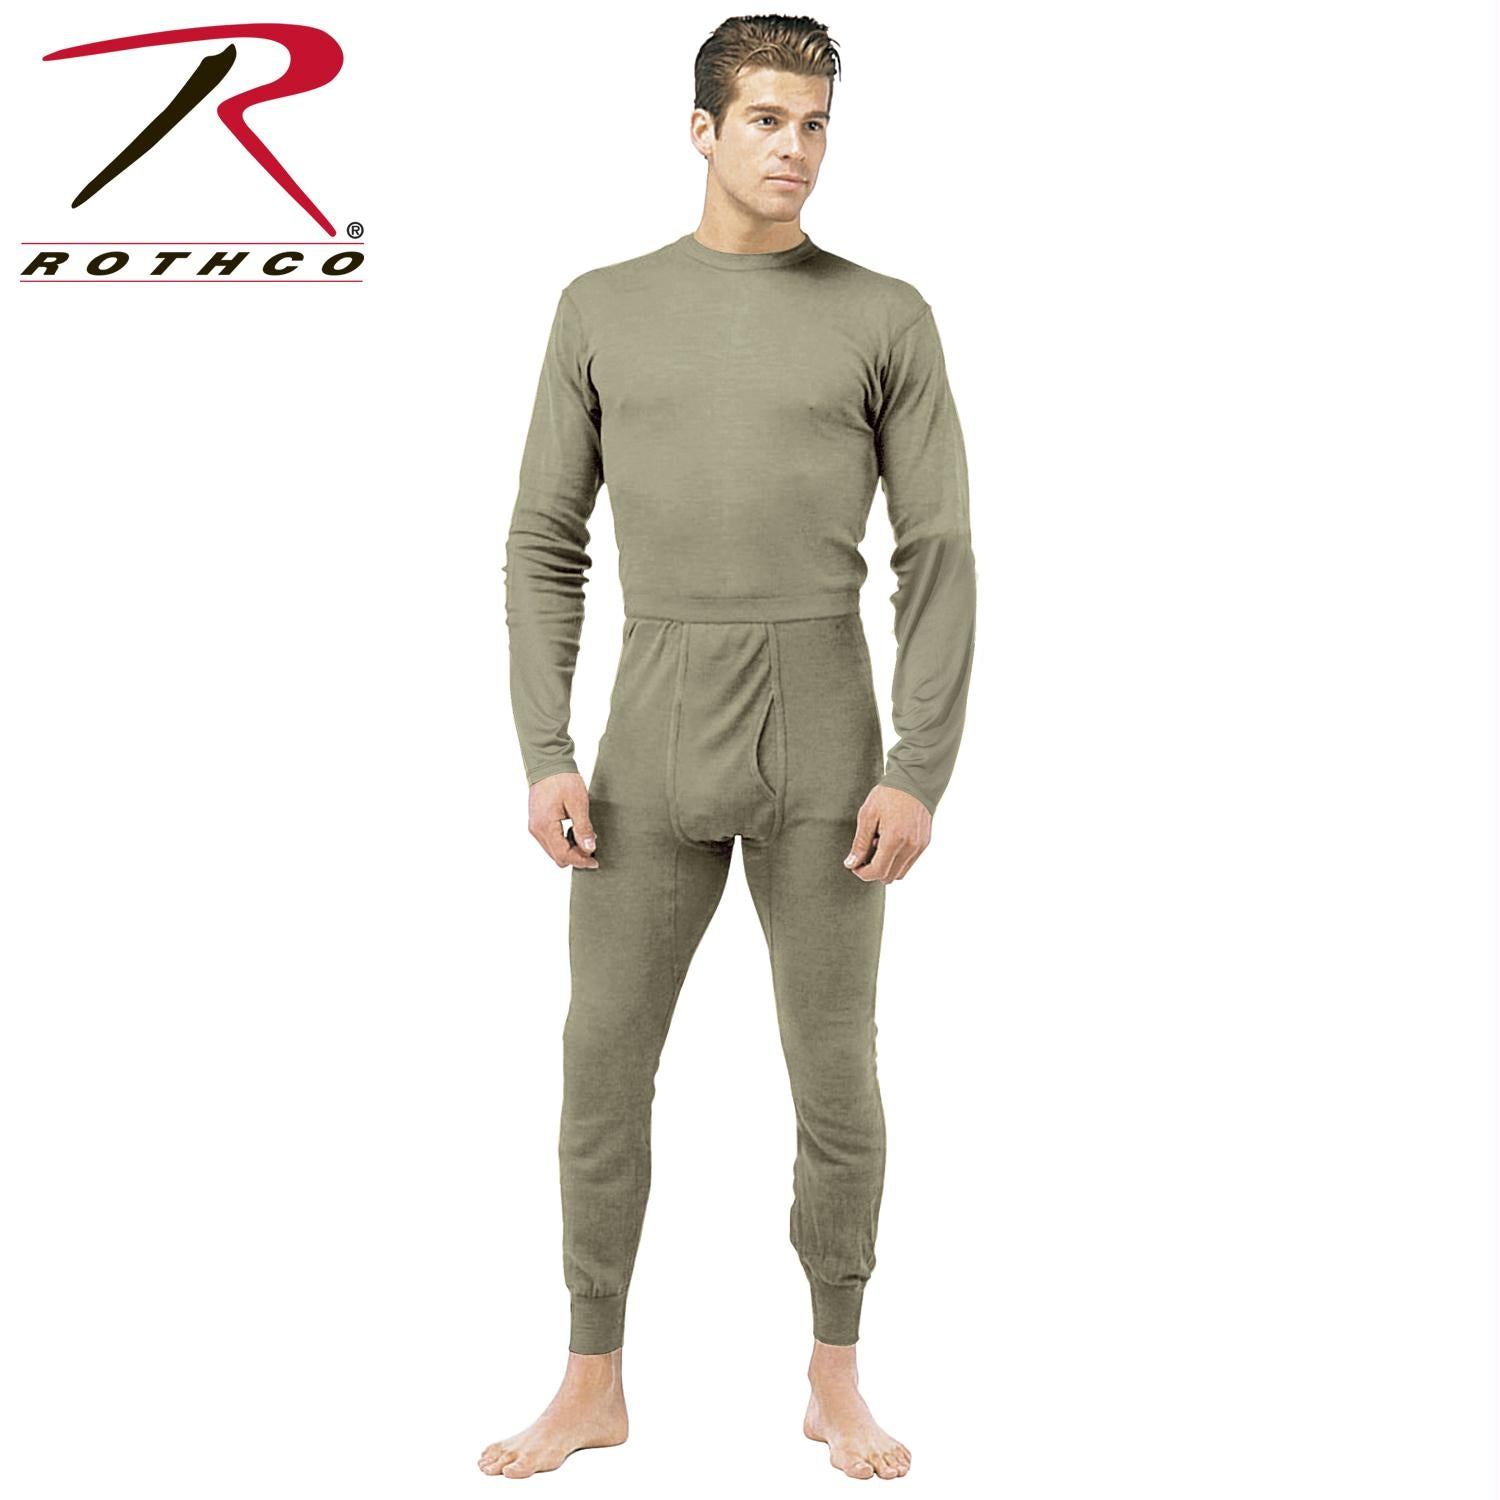 Rothco Gen III Silk Weight Bottoms - Foliage Green / L